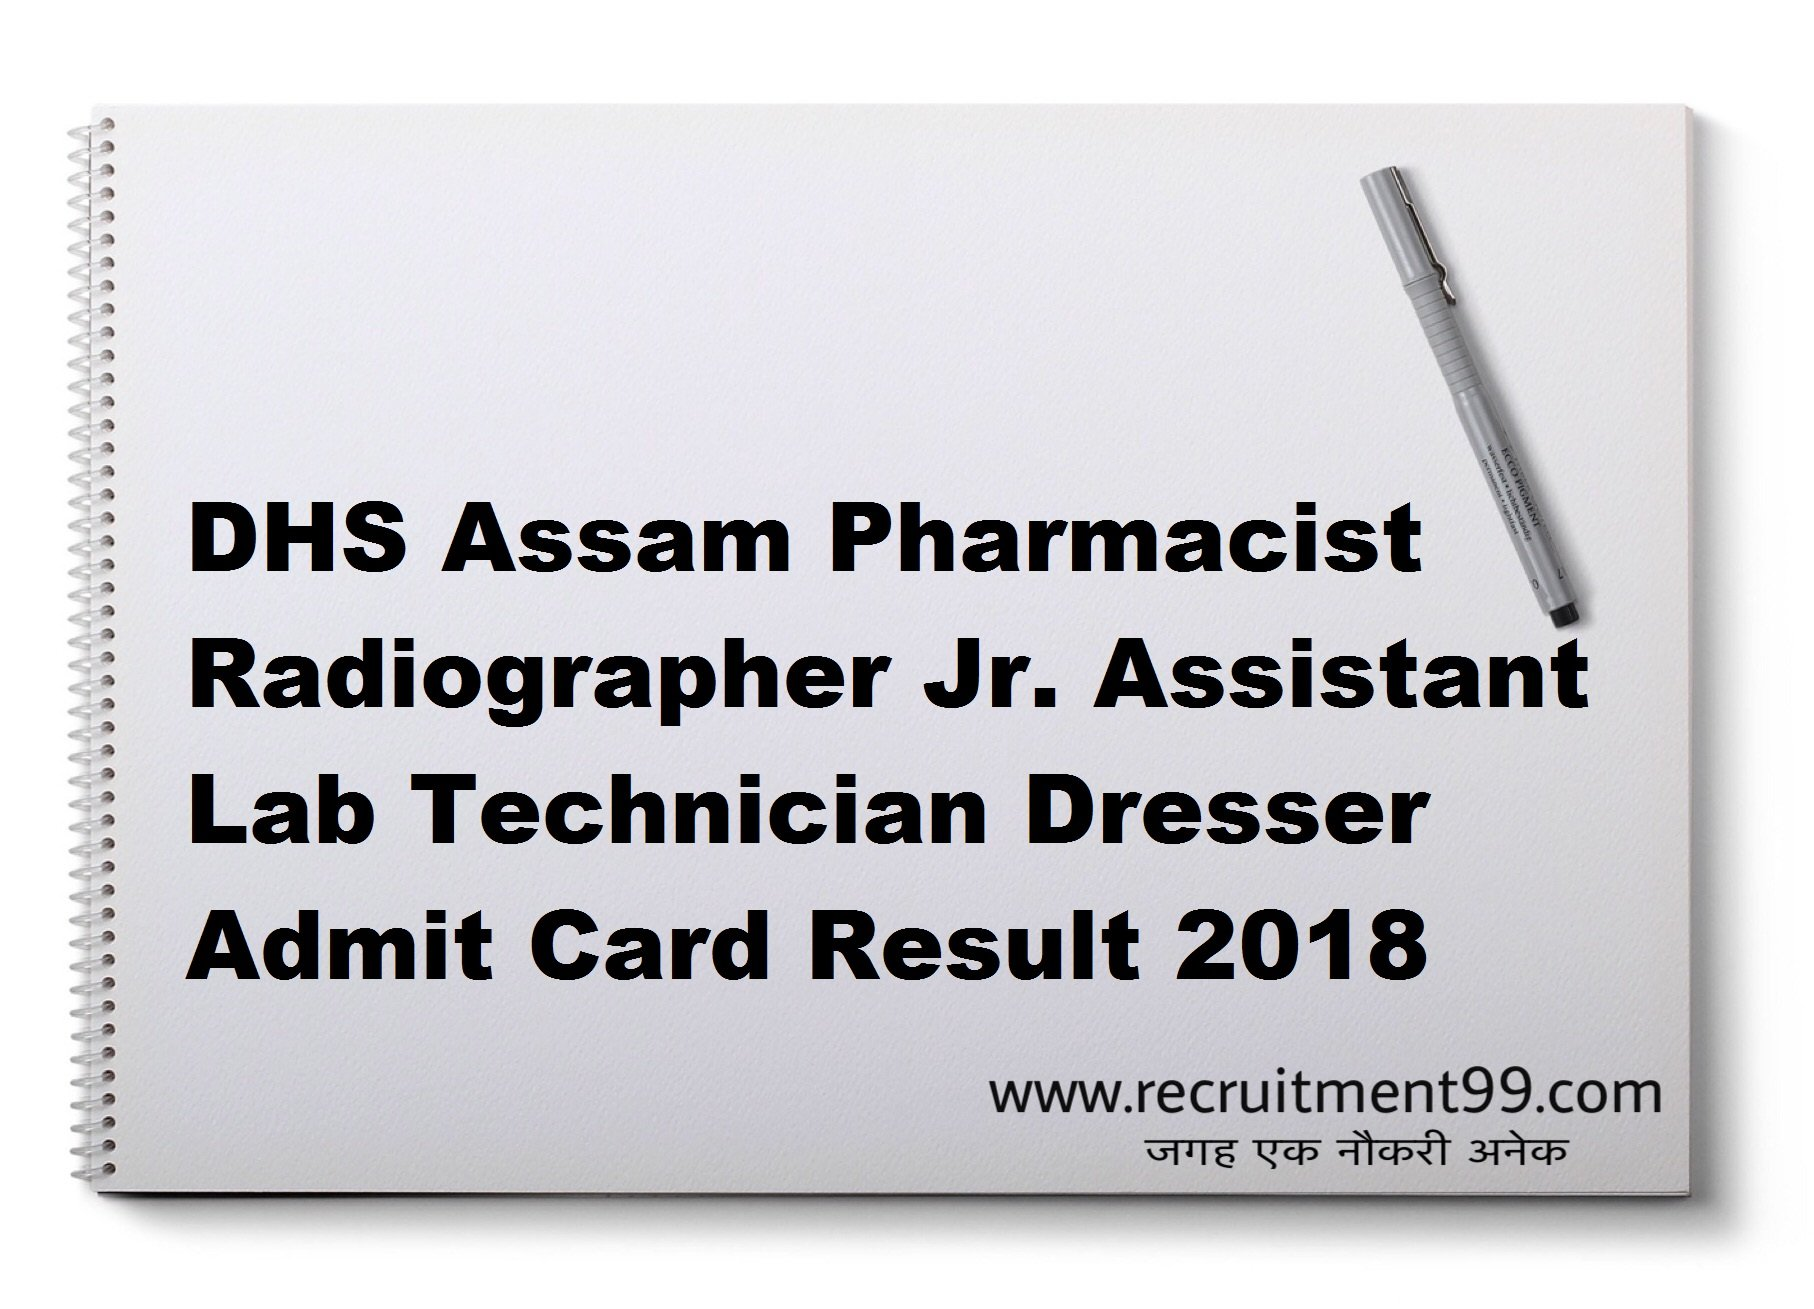 DHS Assam Pharmacist Radiographer Jr. Assistant Lab Technician Dresser Admit Card Result 2018